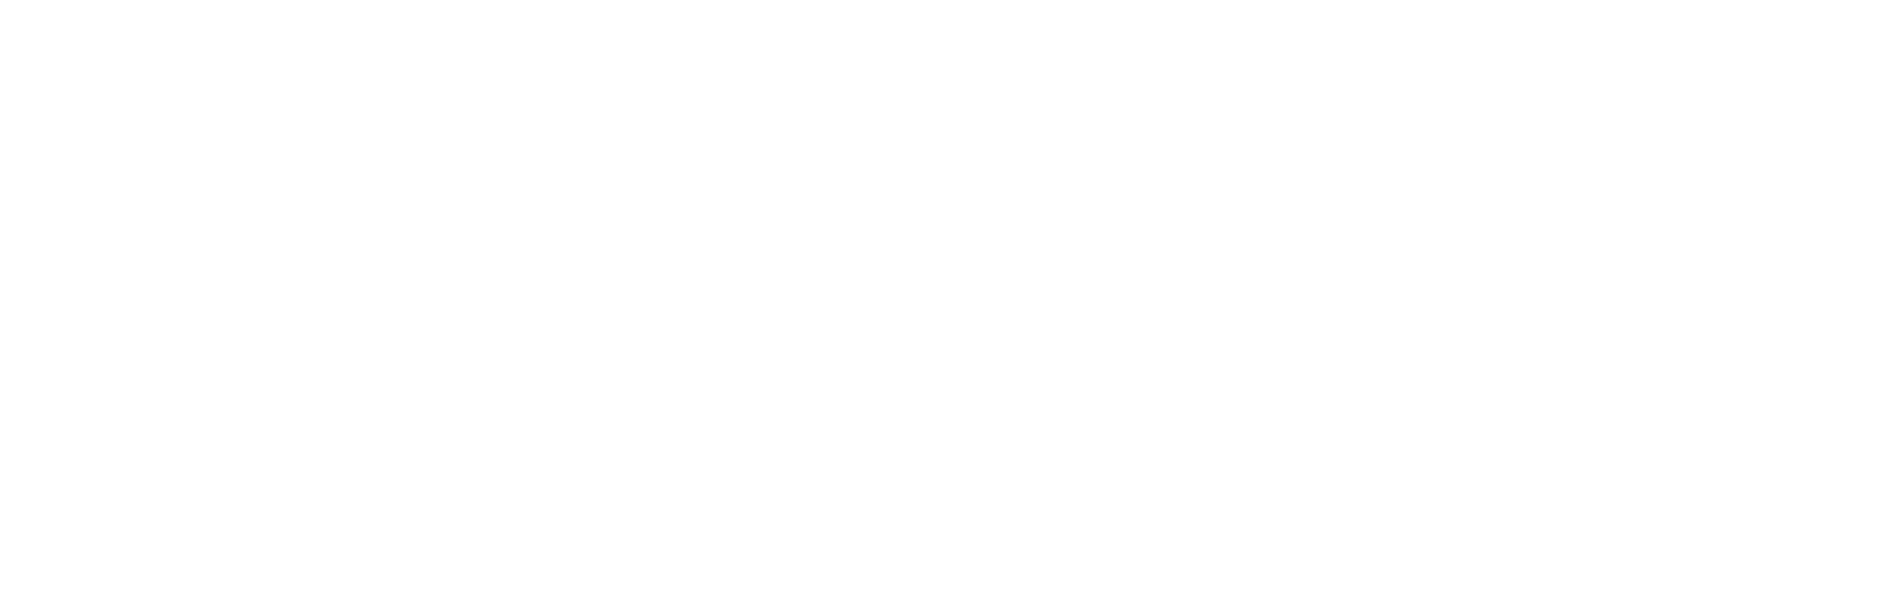 CCare_Logo_White-01.png